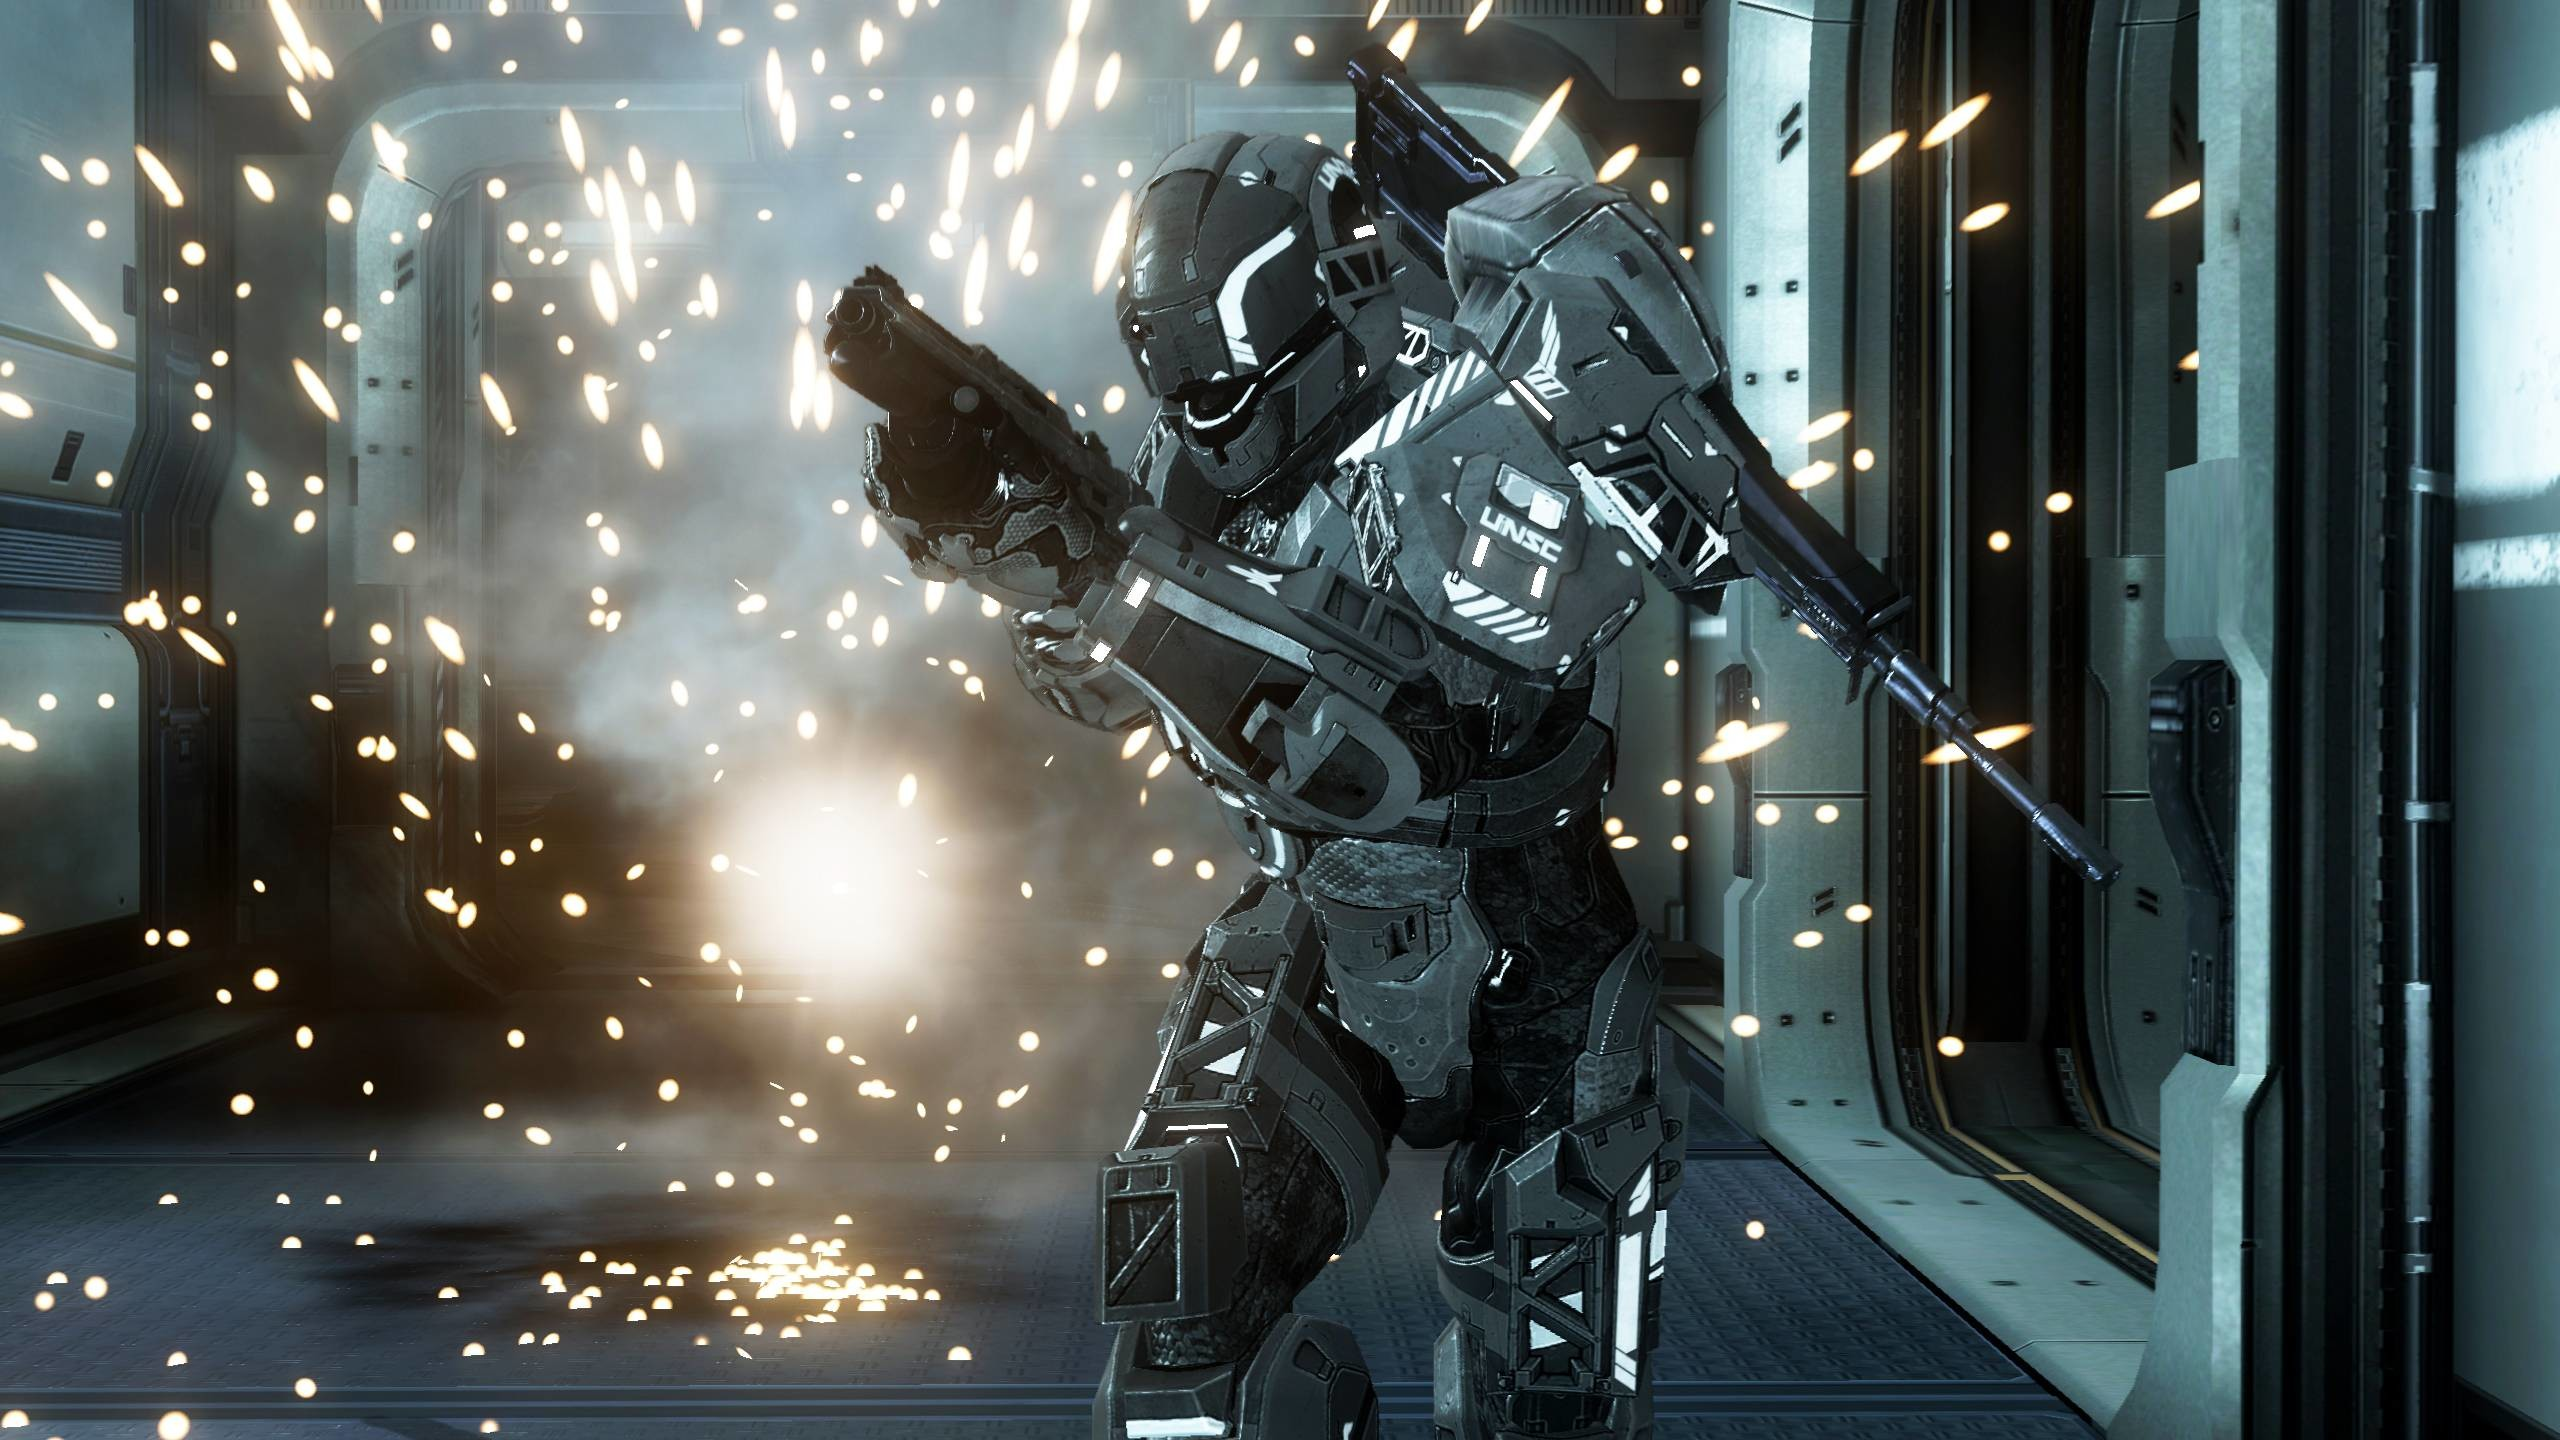 Wallpapers For > Halo 4 Multiplayer Wallpaper